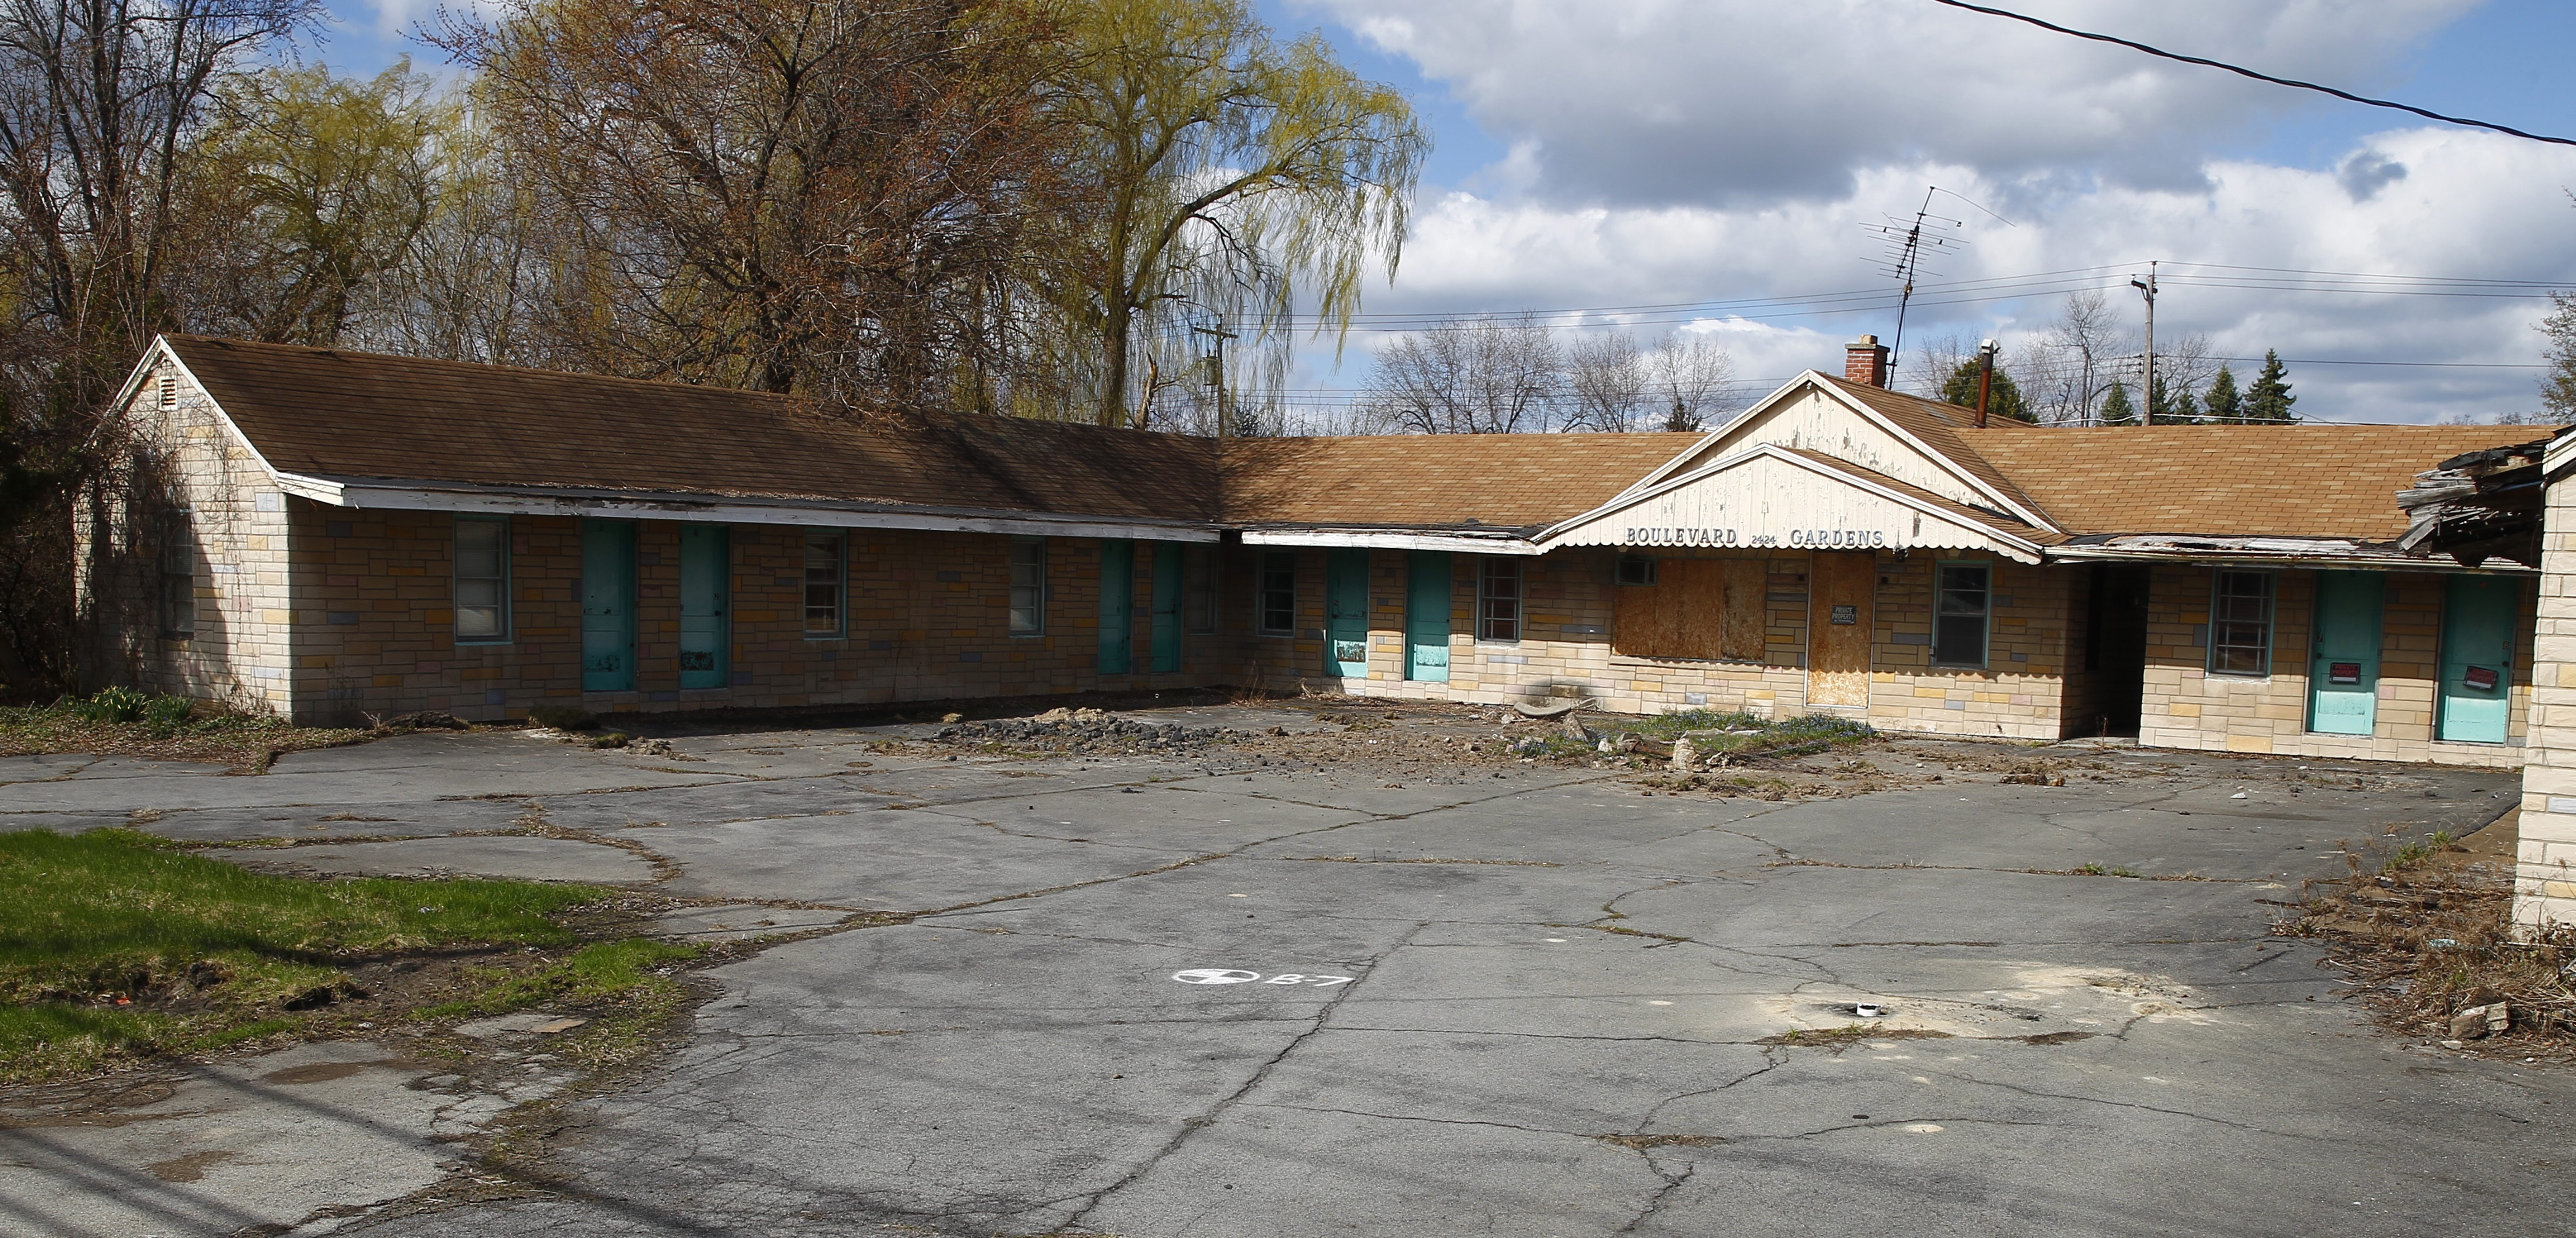 Plans for a Holiday Inn Express on Niagara Falls Boulevard, between Forbes and Thistle Avenues, were proposed more than two years ago the properties still remain fenced in waiting for development in  Town of Tonawanda, NY on Friday, April 24, 2015.  (John Hickey/Buffalo News)